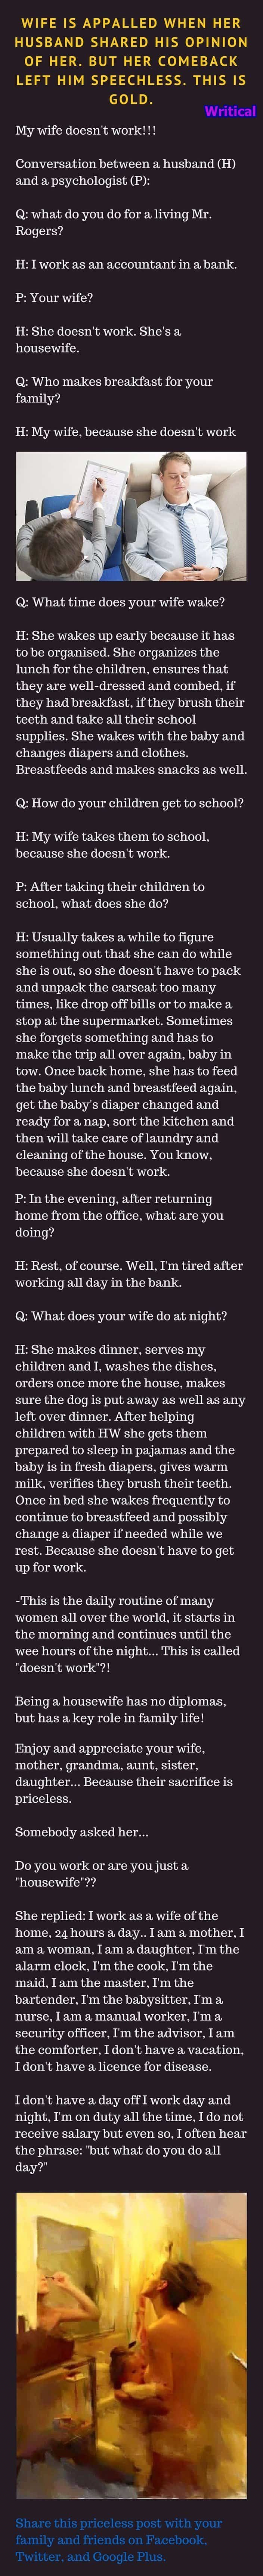 Husband's opinion about his wife is shocking